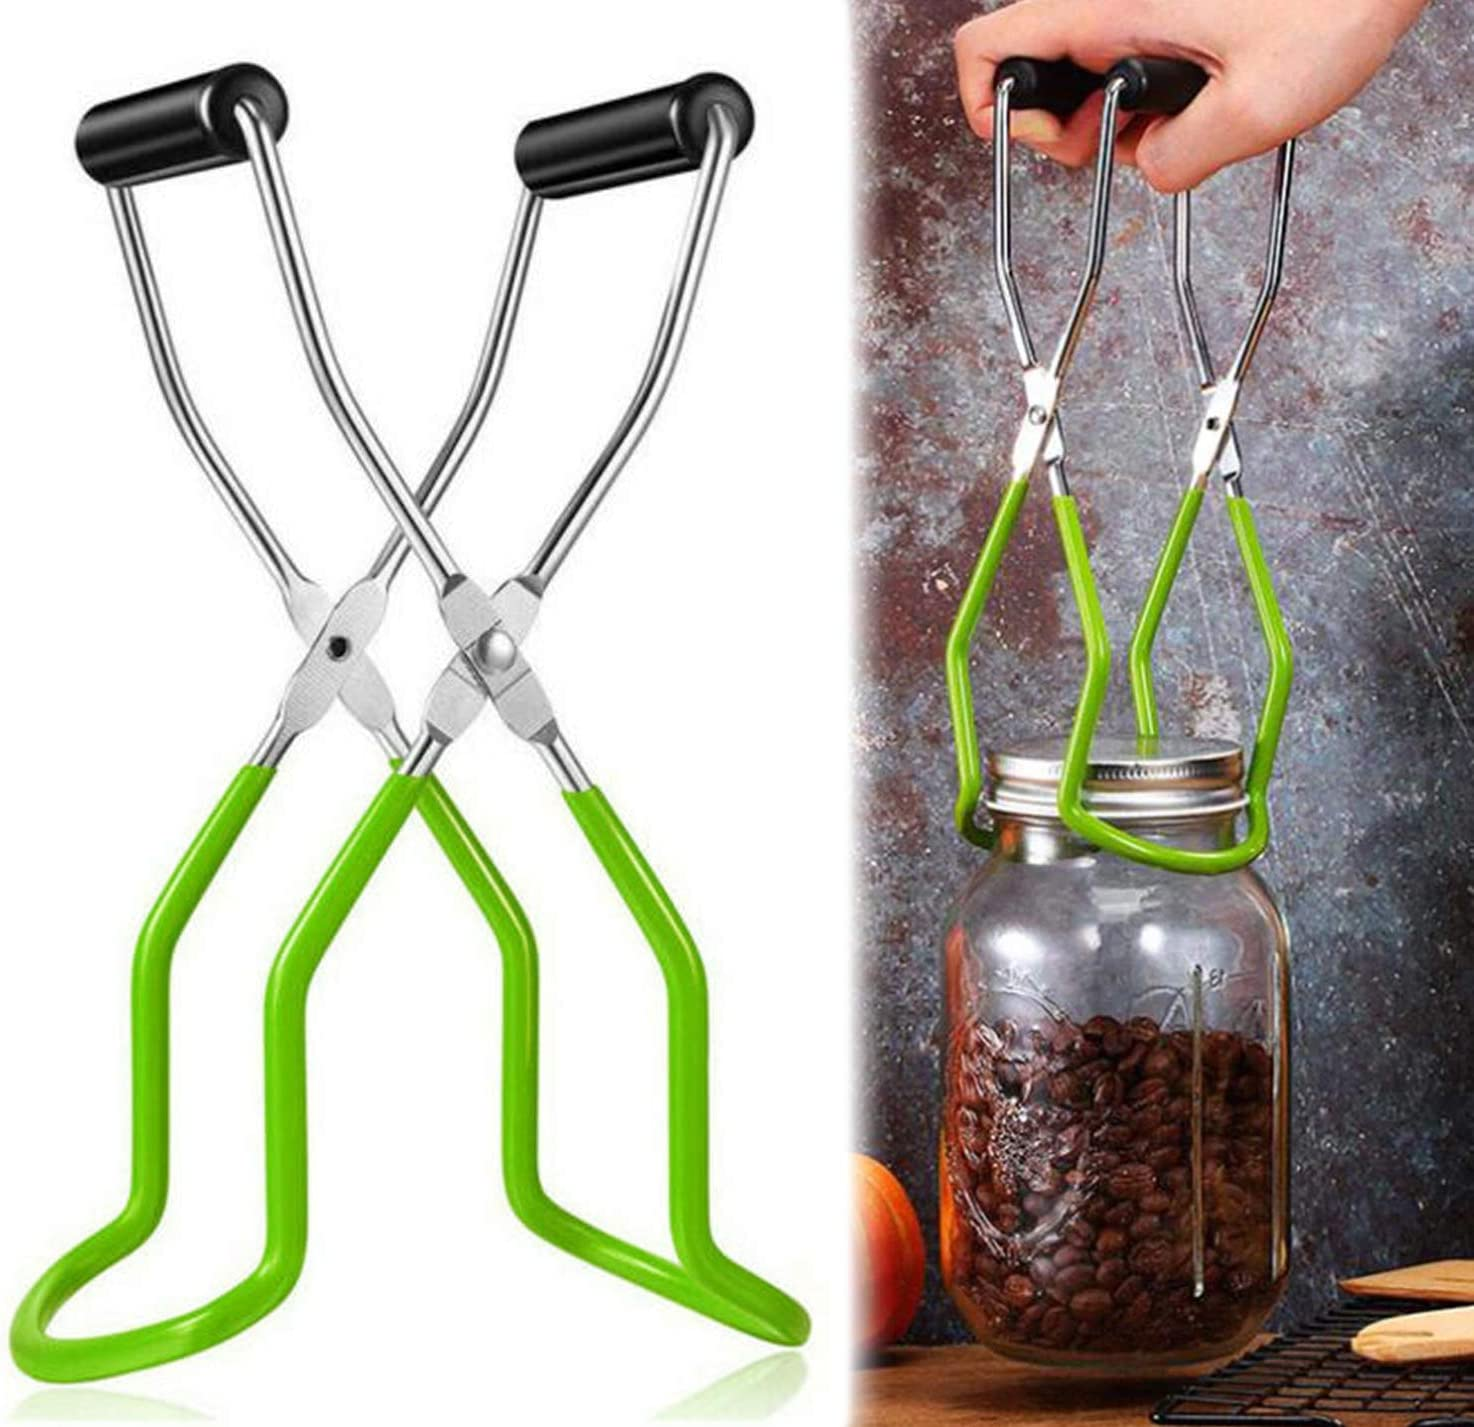 Aiden's World Canning Jar Lifter Tongs Stainless Steel Jar Lifter with Anti-Slip and Soft Rubber Grip Handle for Safe and Secure Handling (Green)